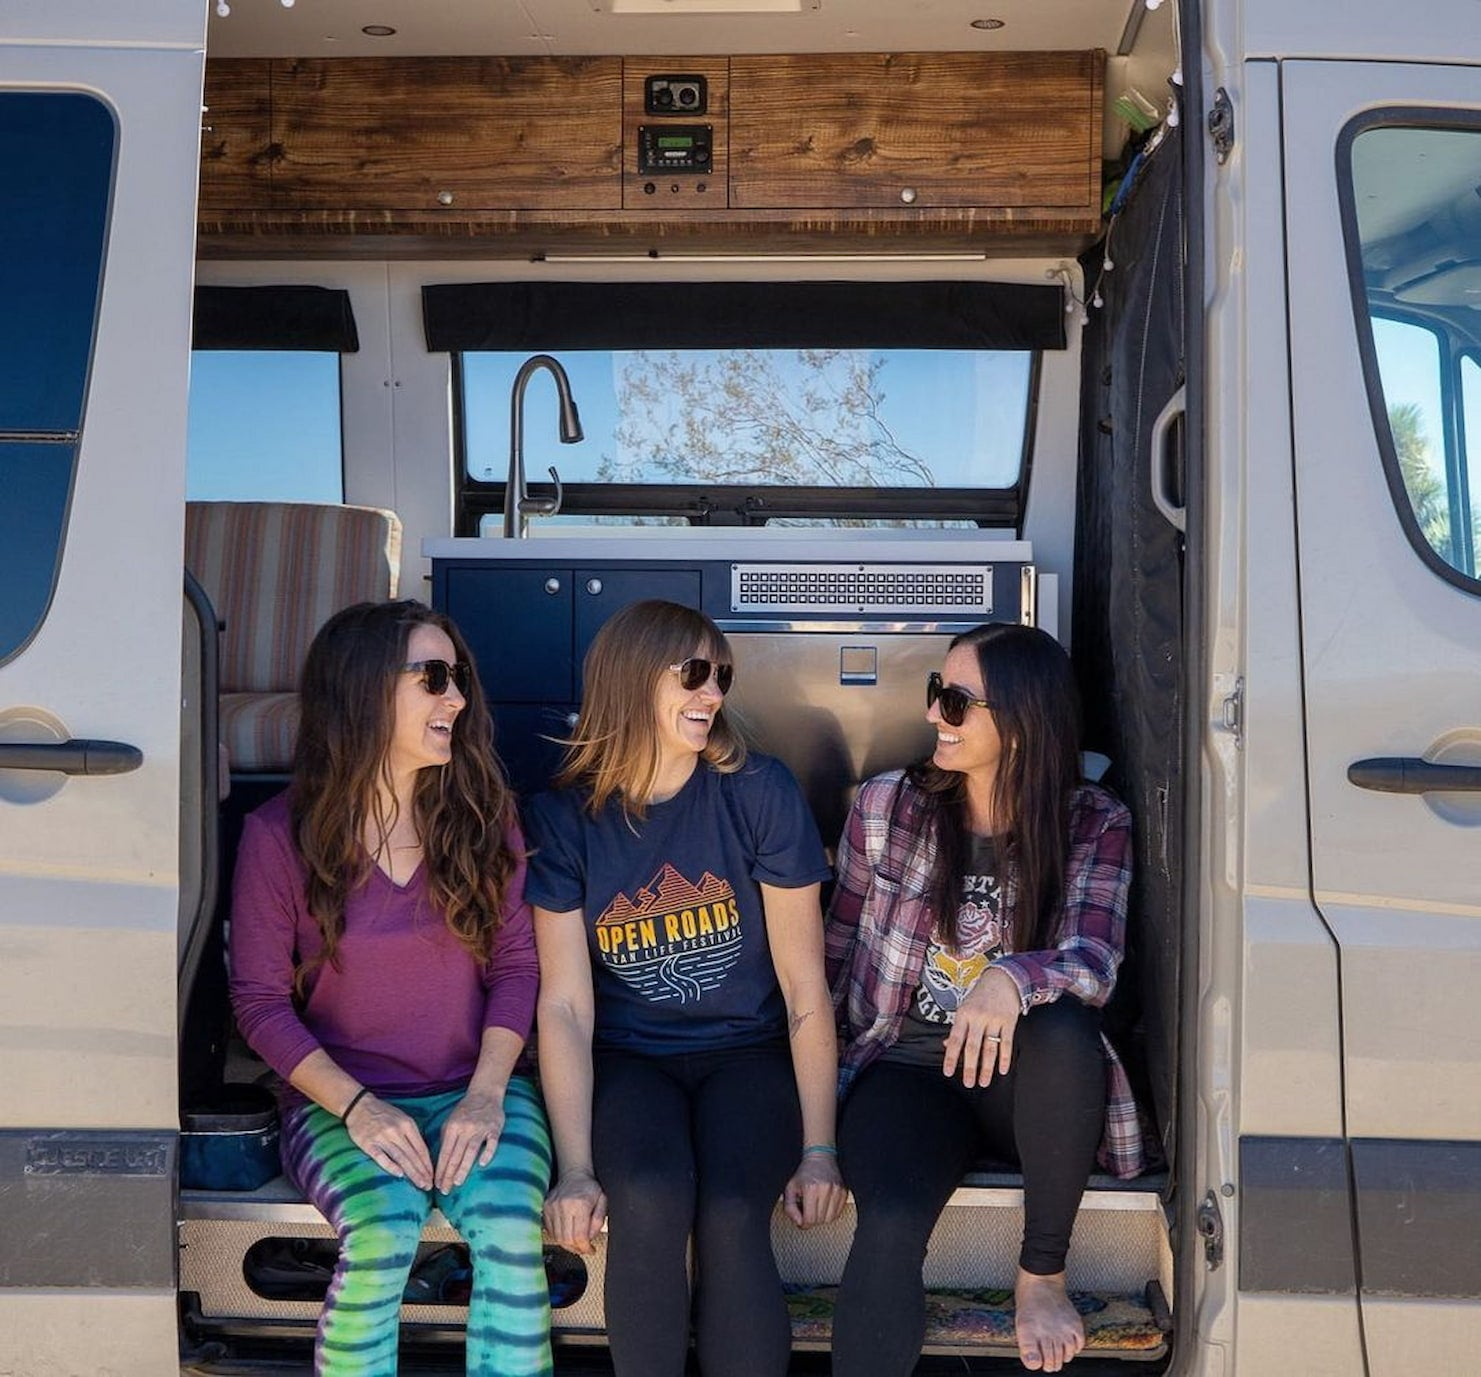 Group of women hanging out in a camper van.